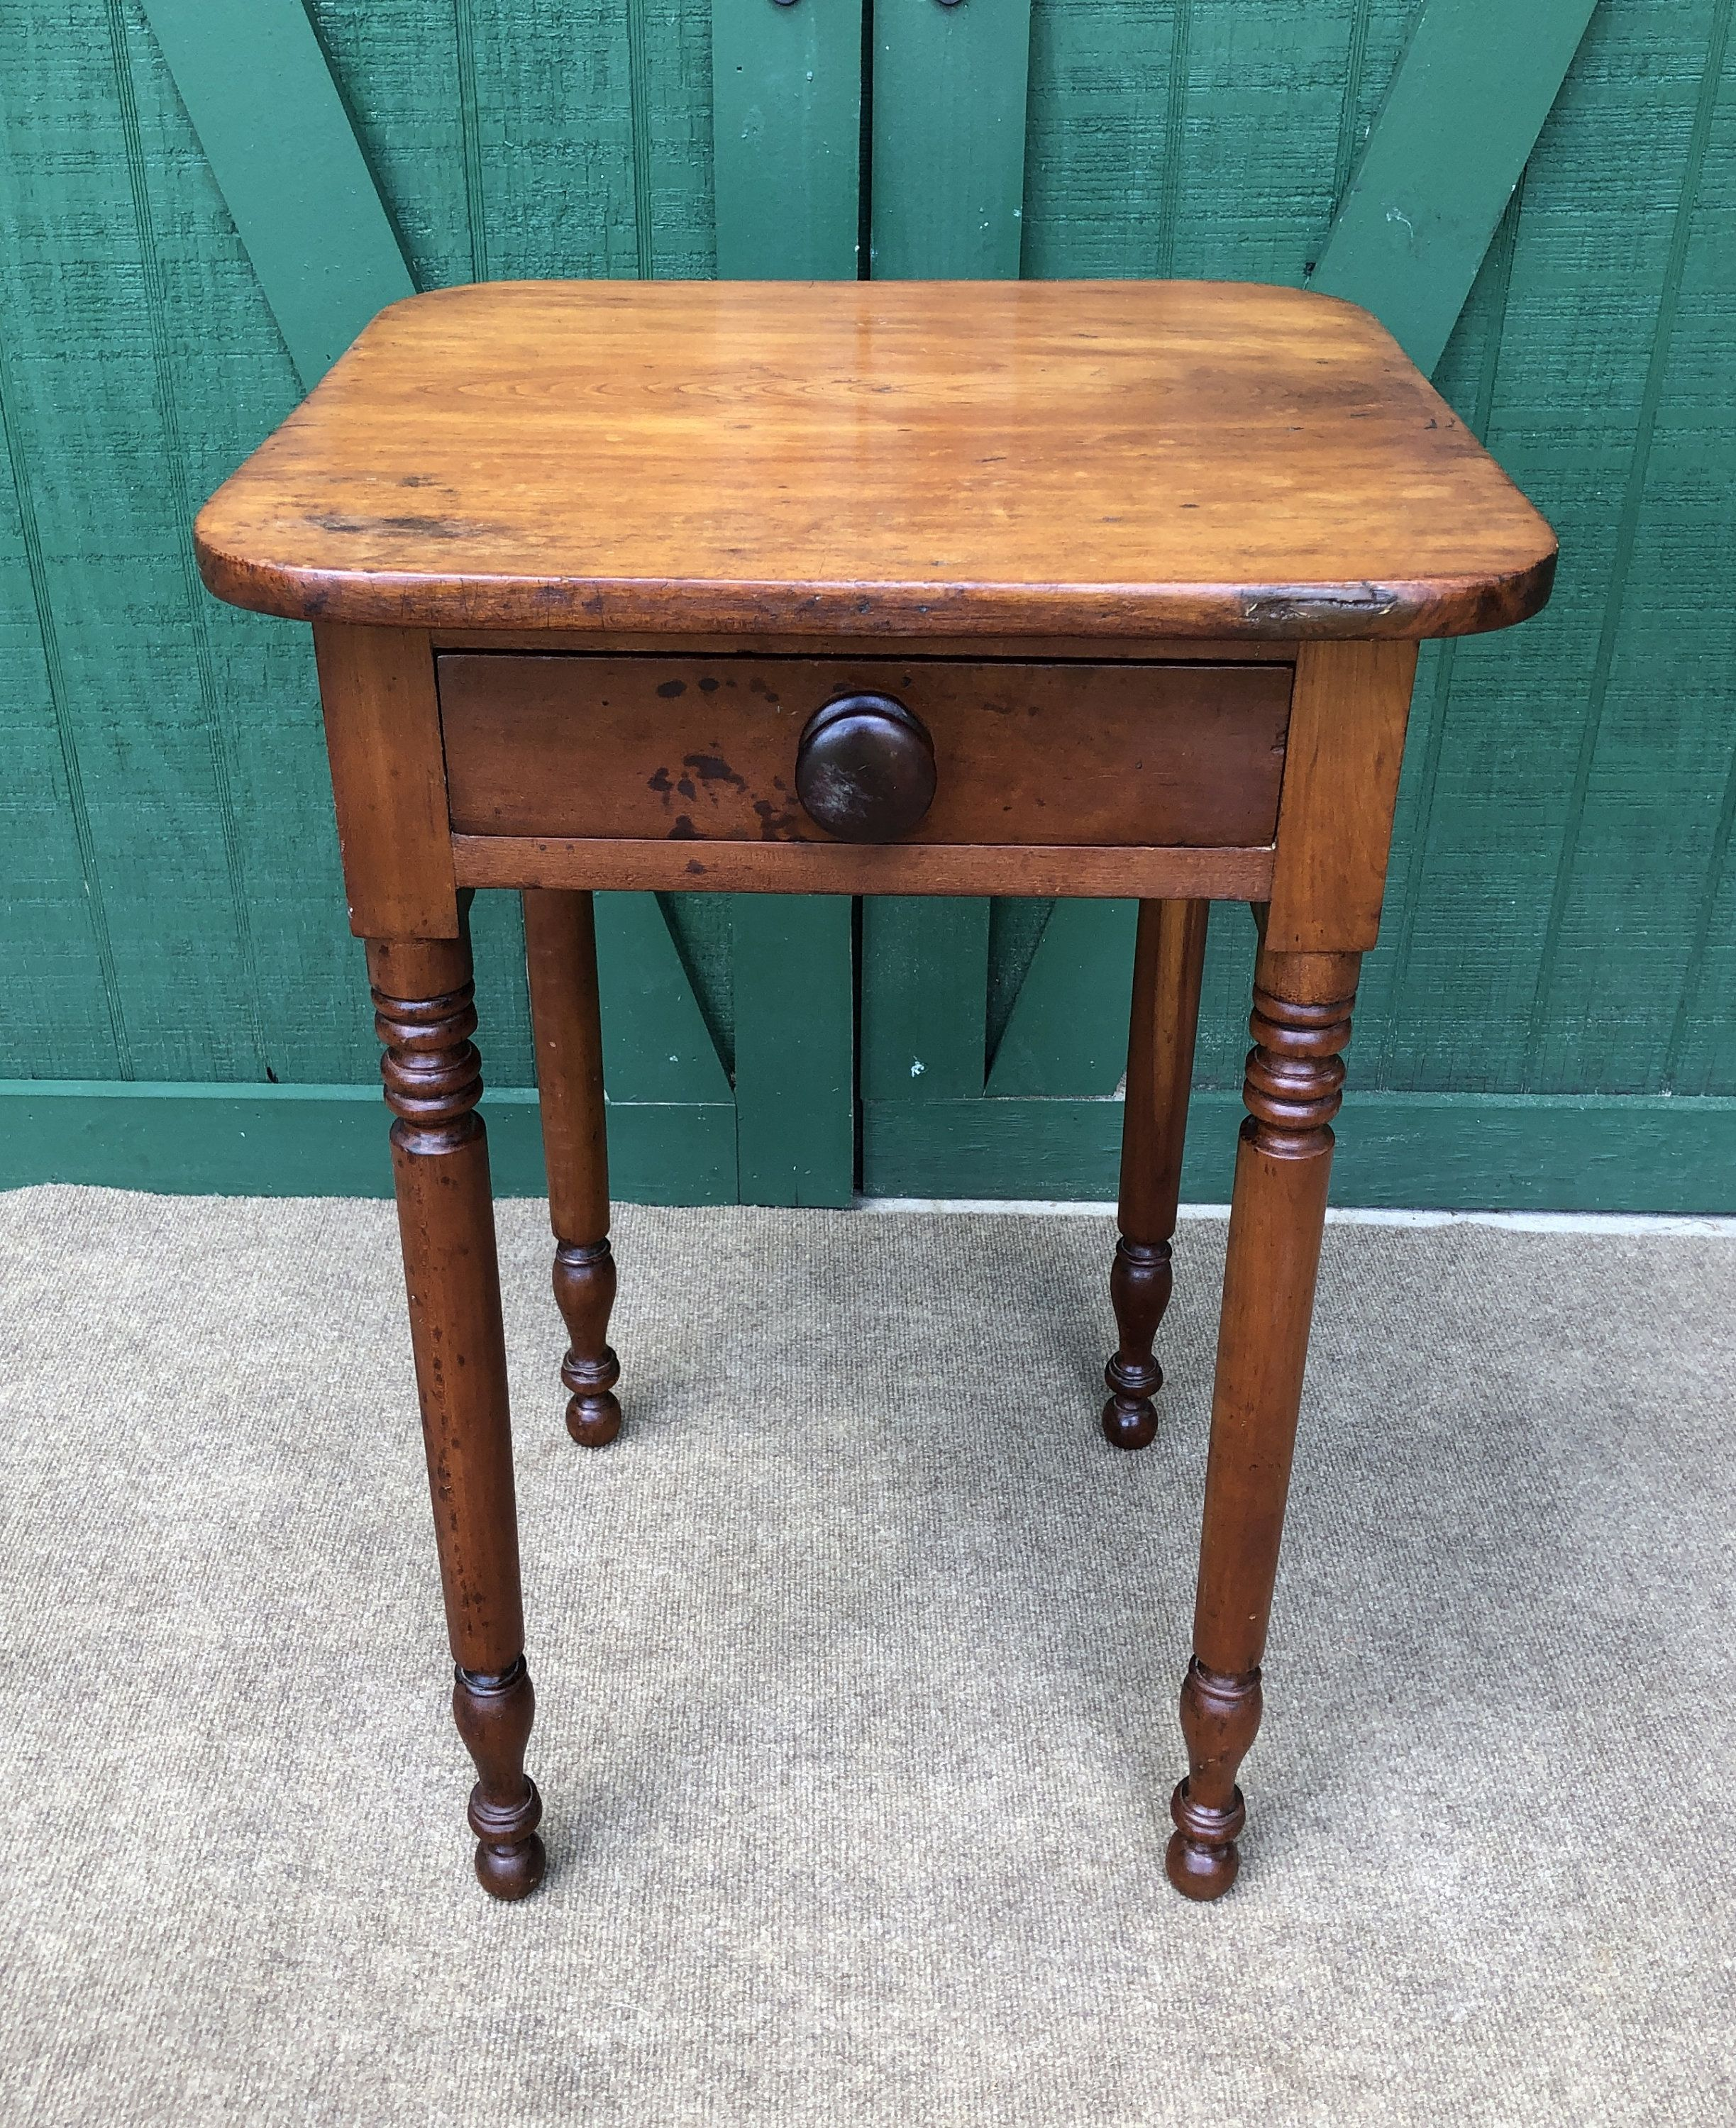 End Table Pine Hand Crafted One Drawer Table Hand Turned Legs Original Square Nails Circa 1800s Antique Pine Table In 2020 Pine Table Drawer Table End Tables